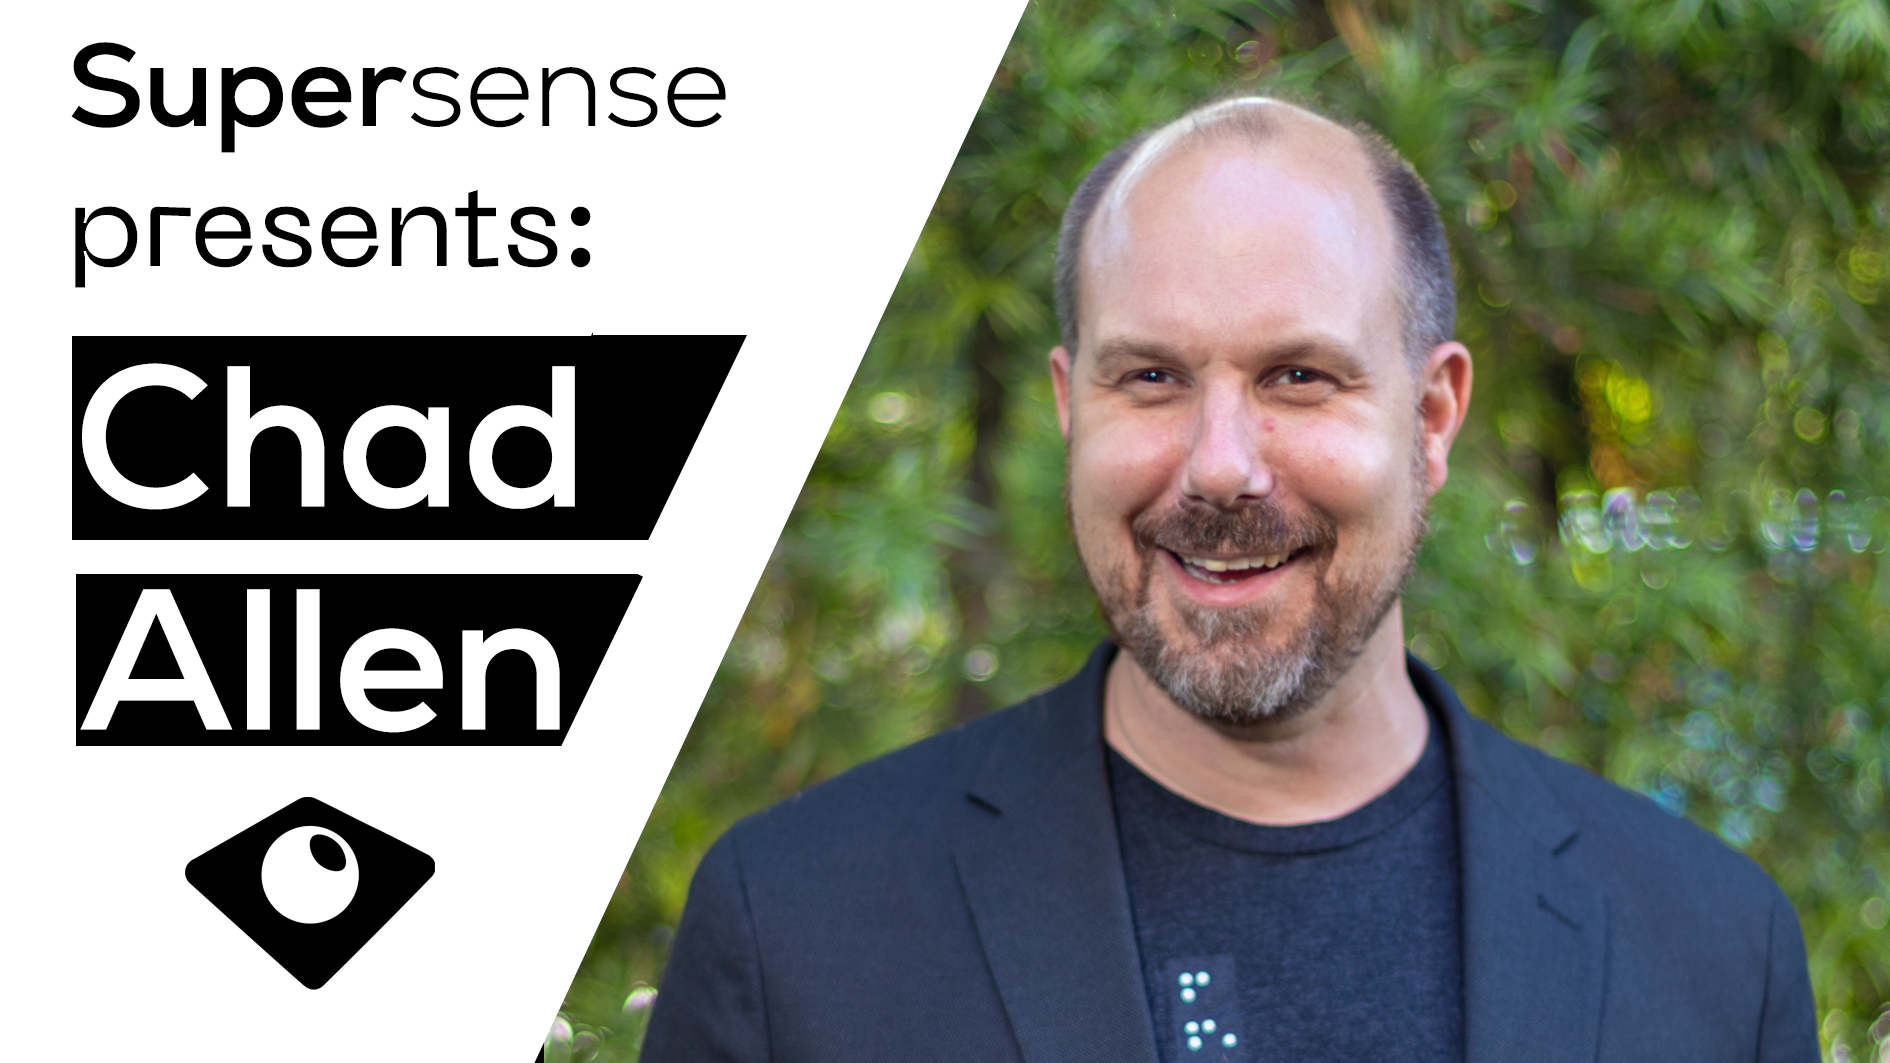 Supersense presents: Chad Allen, Blind Magician, and the Creator of the Unseen Comic